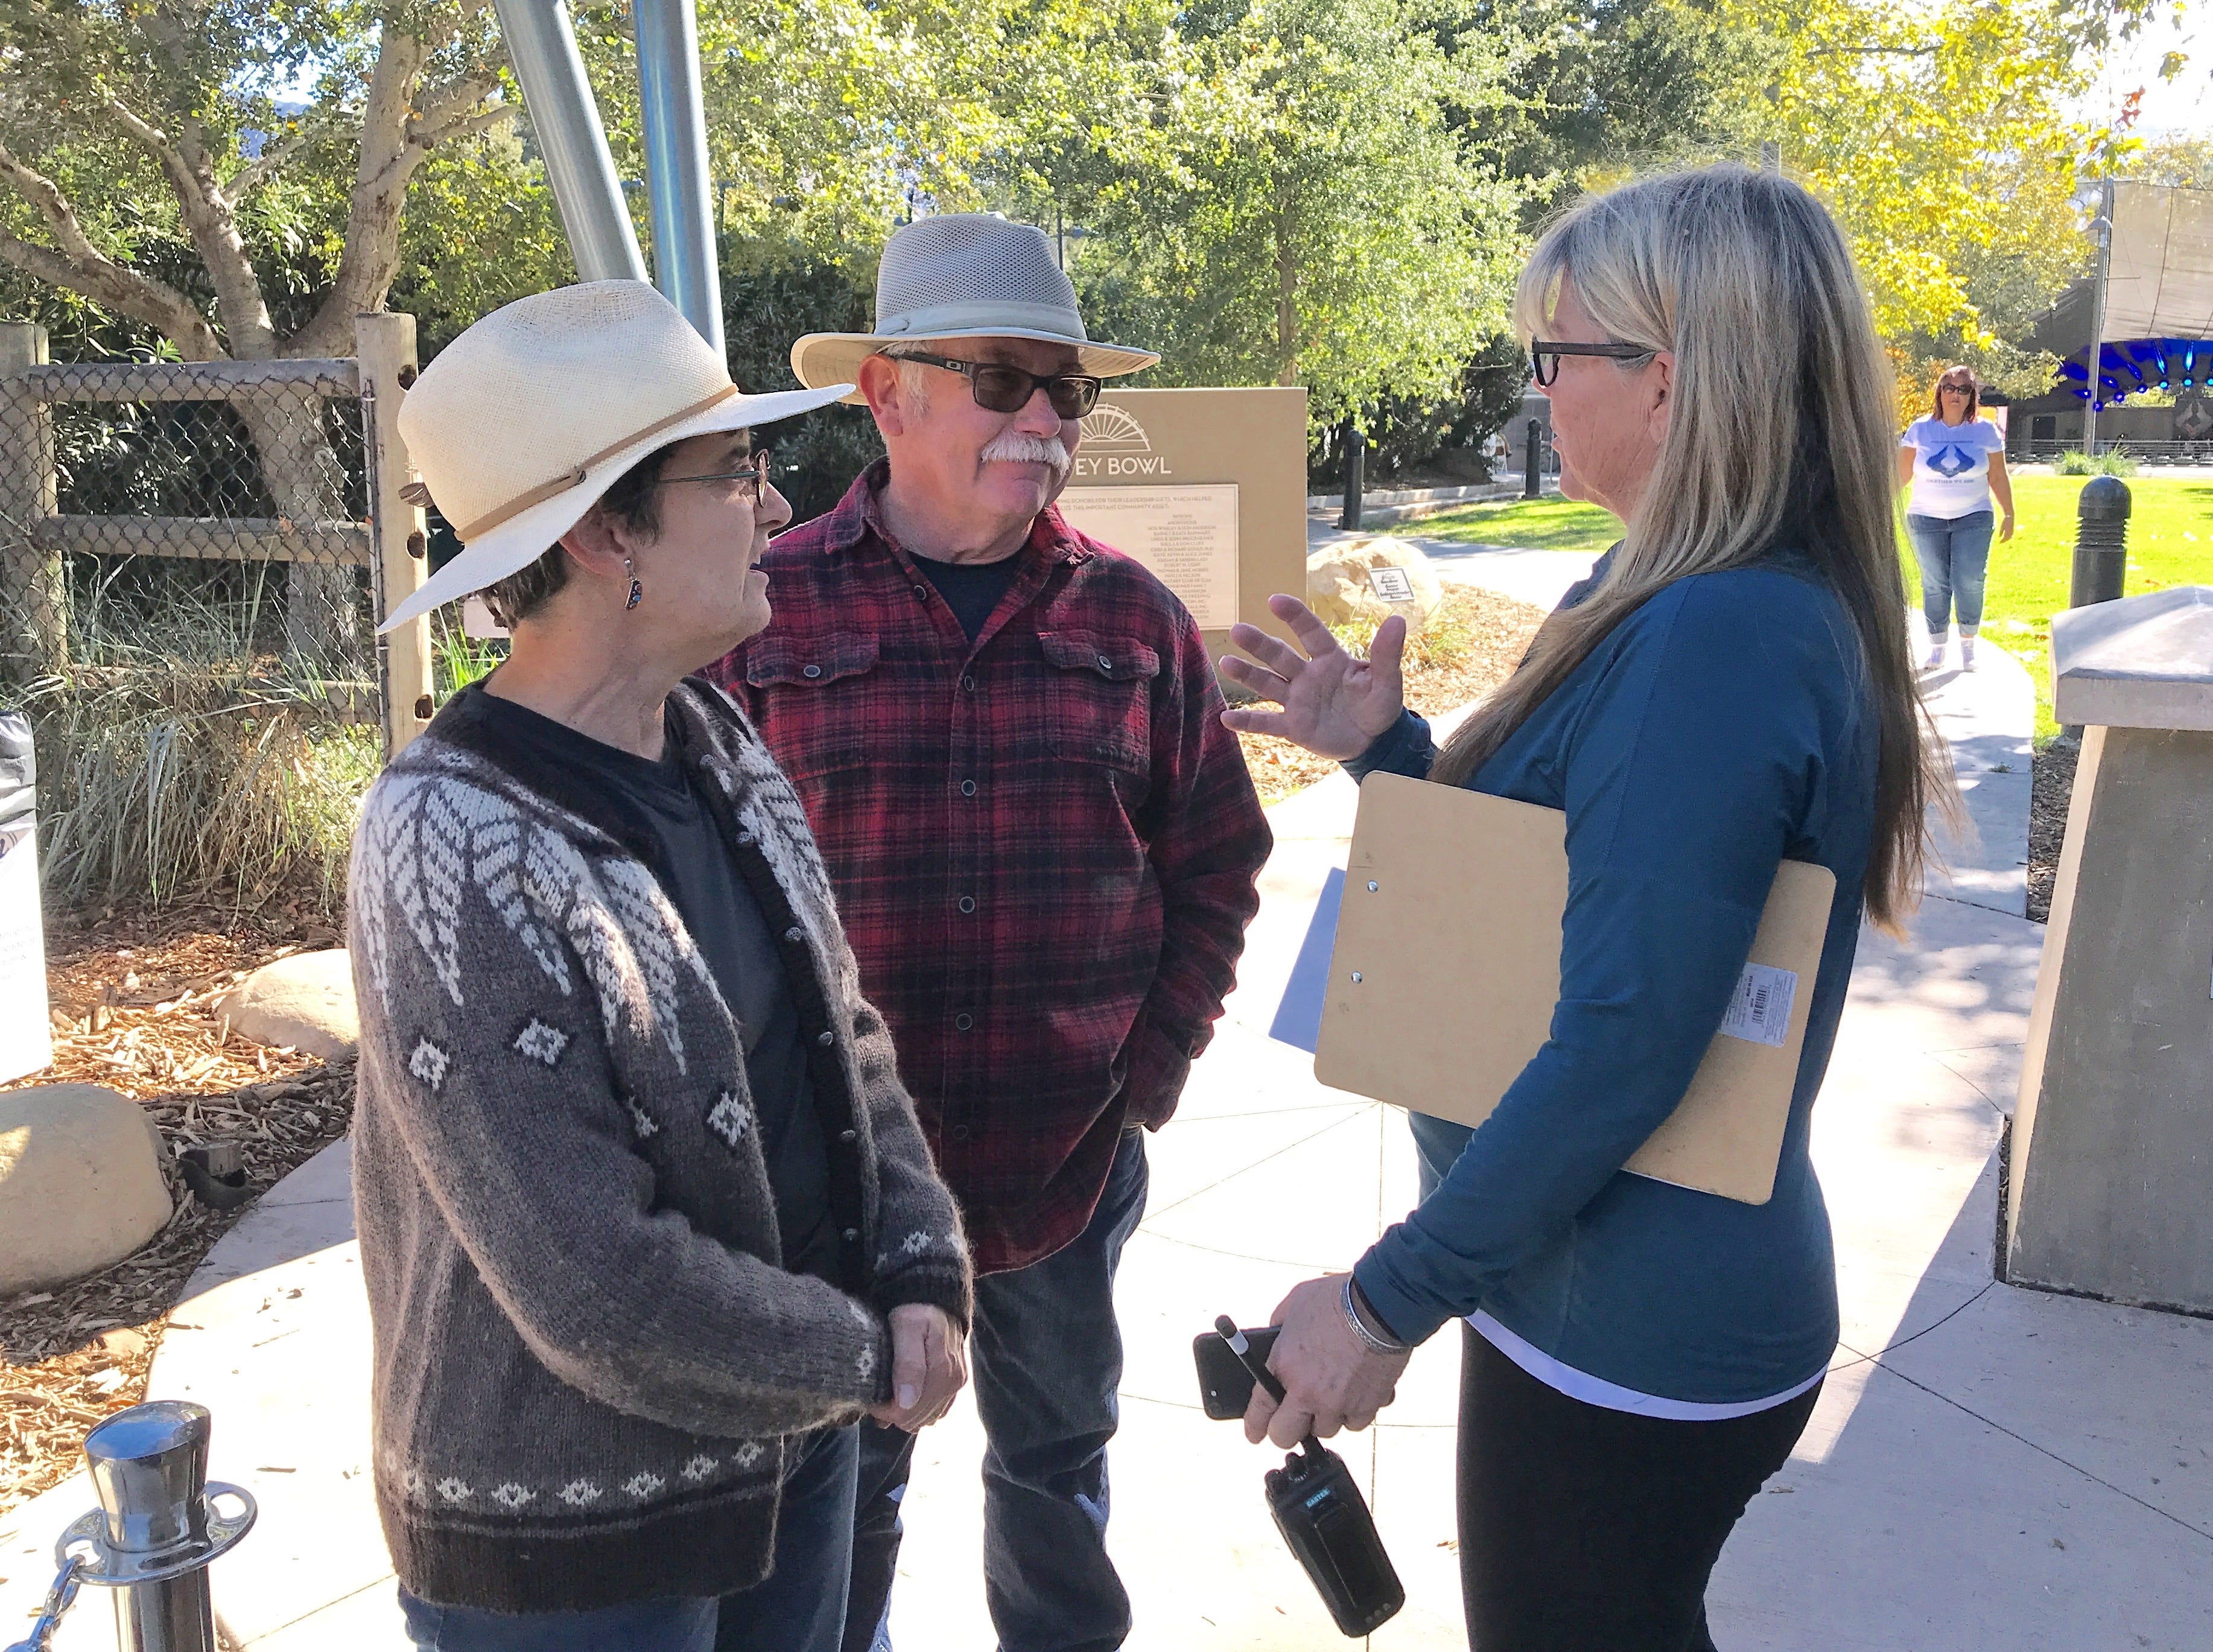 Organizer Kat Merrick, right, speaks with Bob and Heather Sanders, who lost their Upper Ojai home in the Thomas Fire.